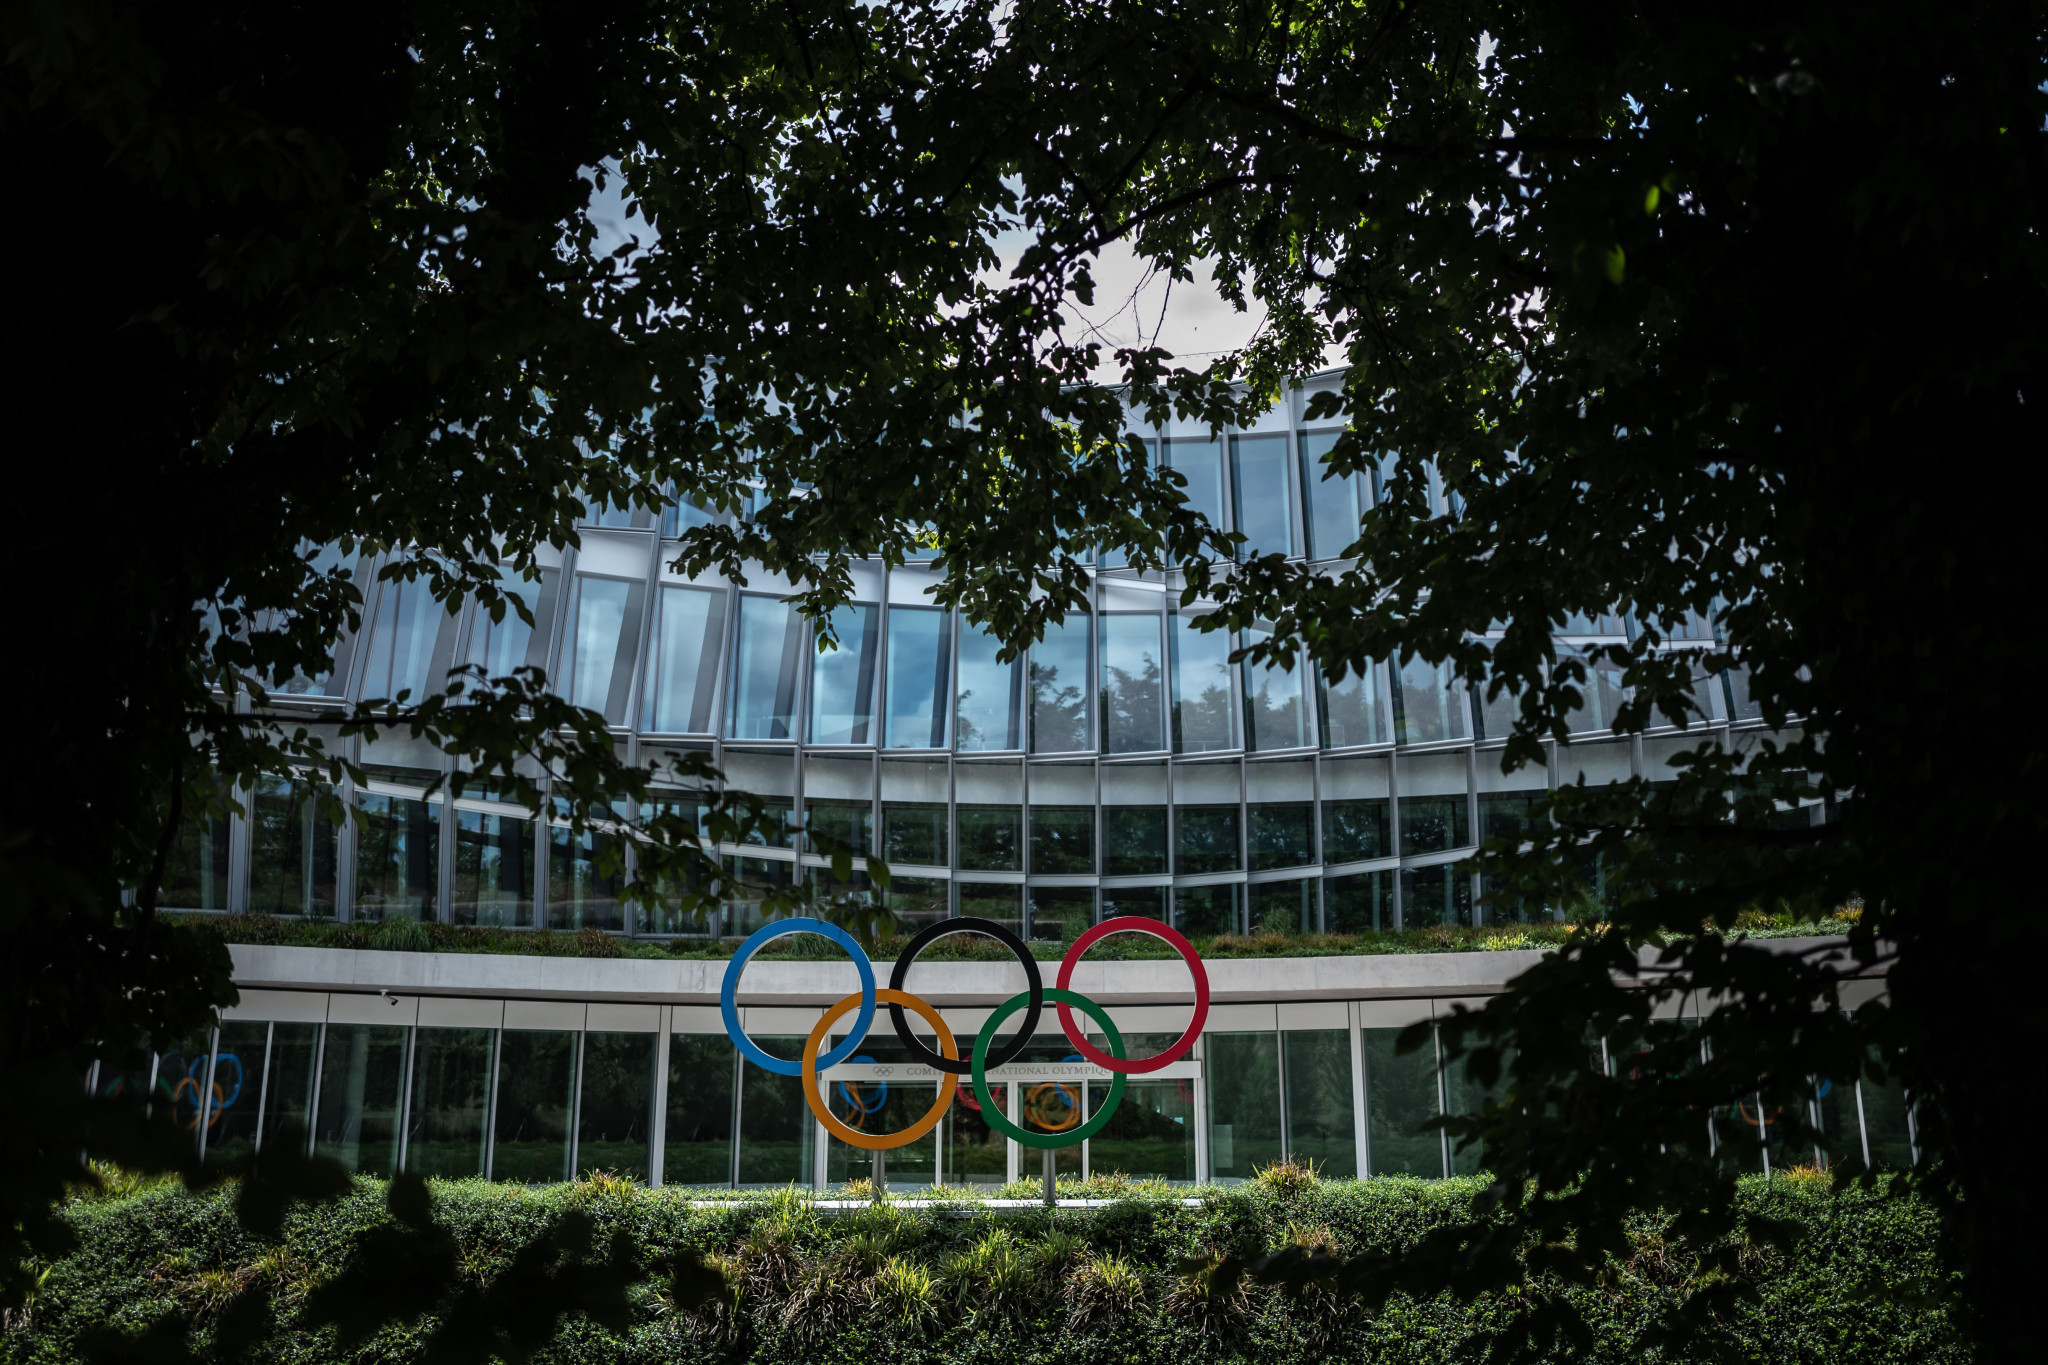 IOC Executive Board to meet as organisation welcomes WHO endorsement of Tokyo 2020